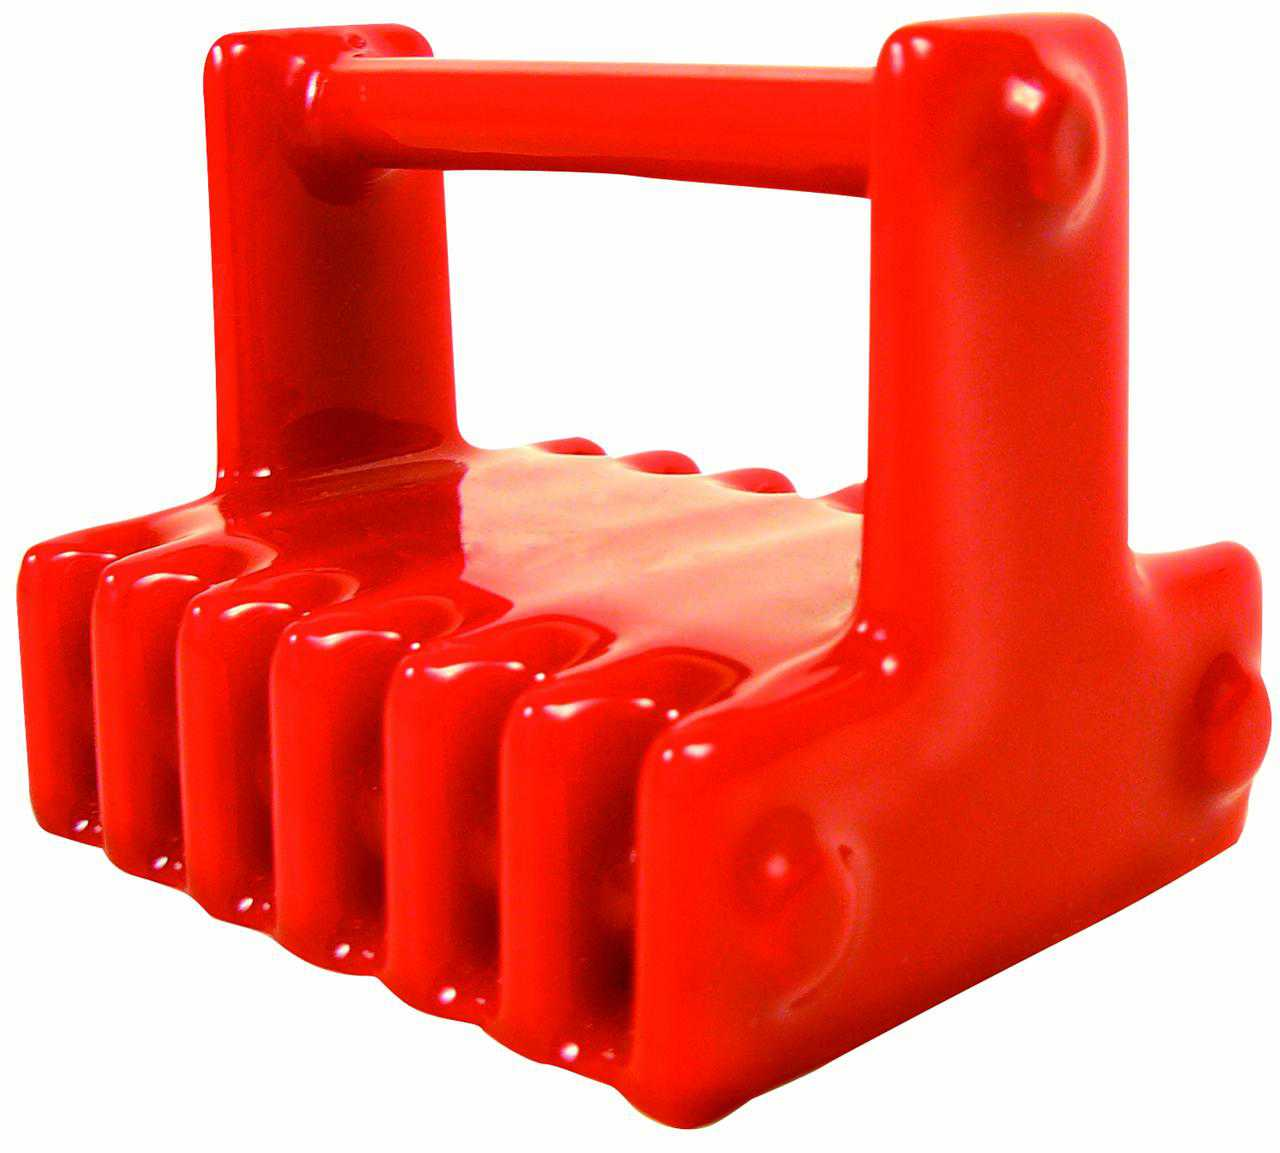 Greenfield Marine Retrieval Magnet 200 lb Rating PVC Coated, Red